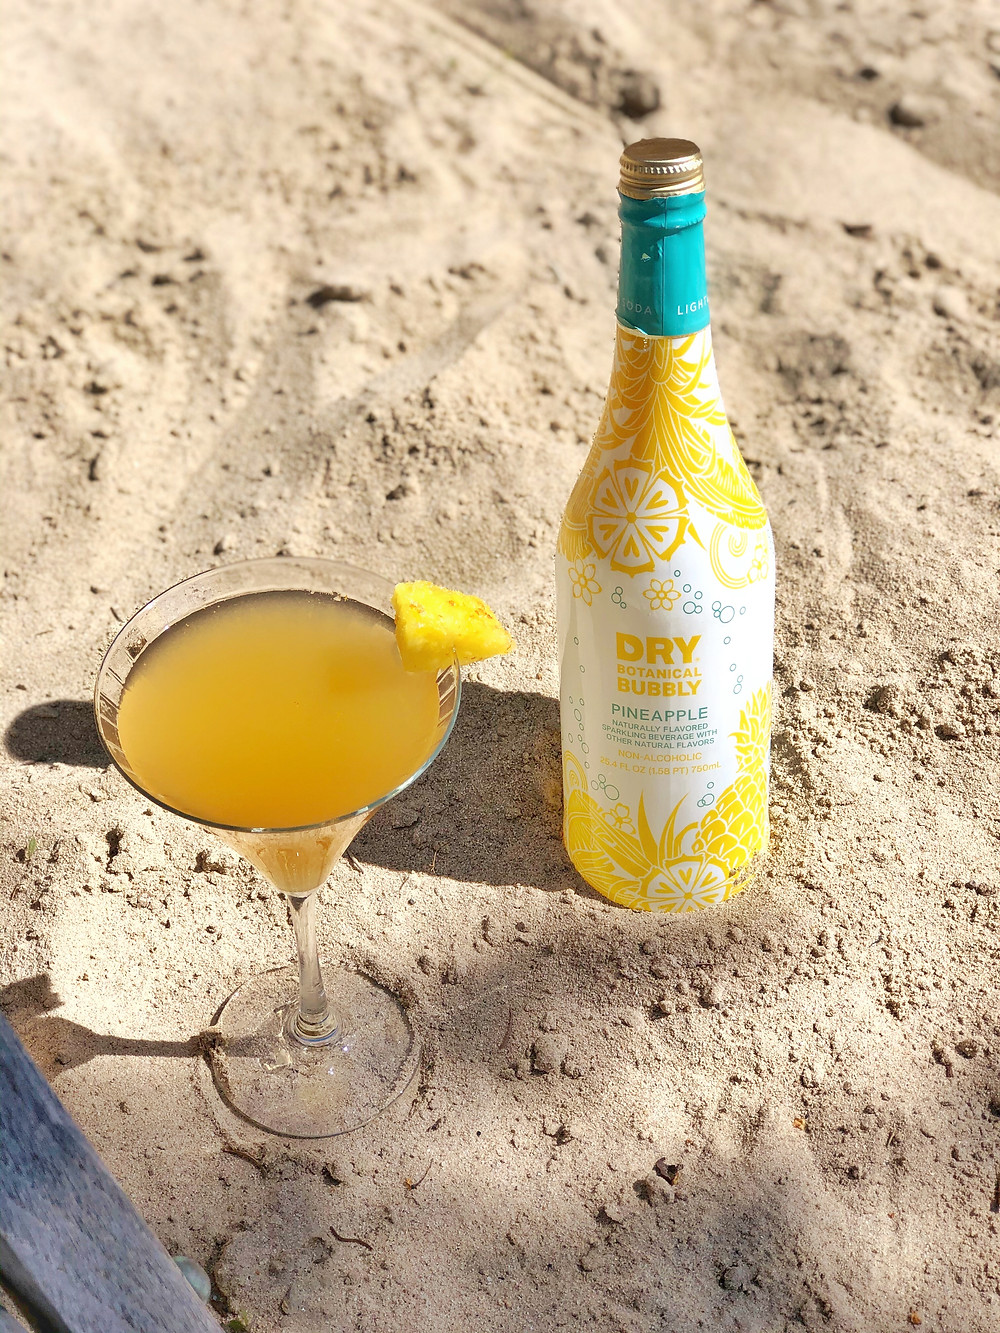 The Tropical Mom-osa by DRY Botanical Bubbly. Non-alcoholic mimosa recipe with Pineapple soda.